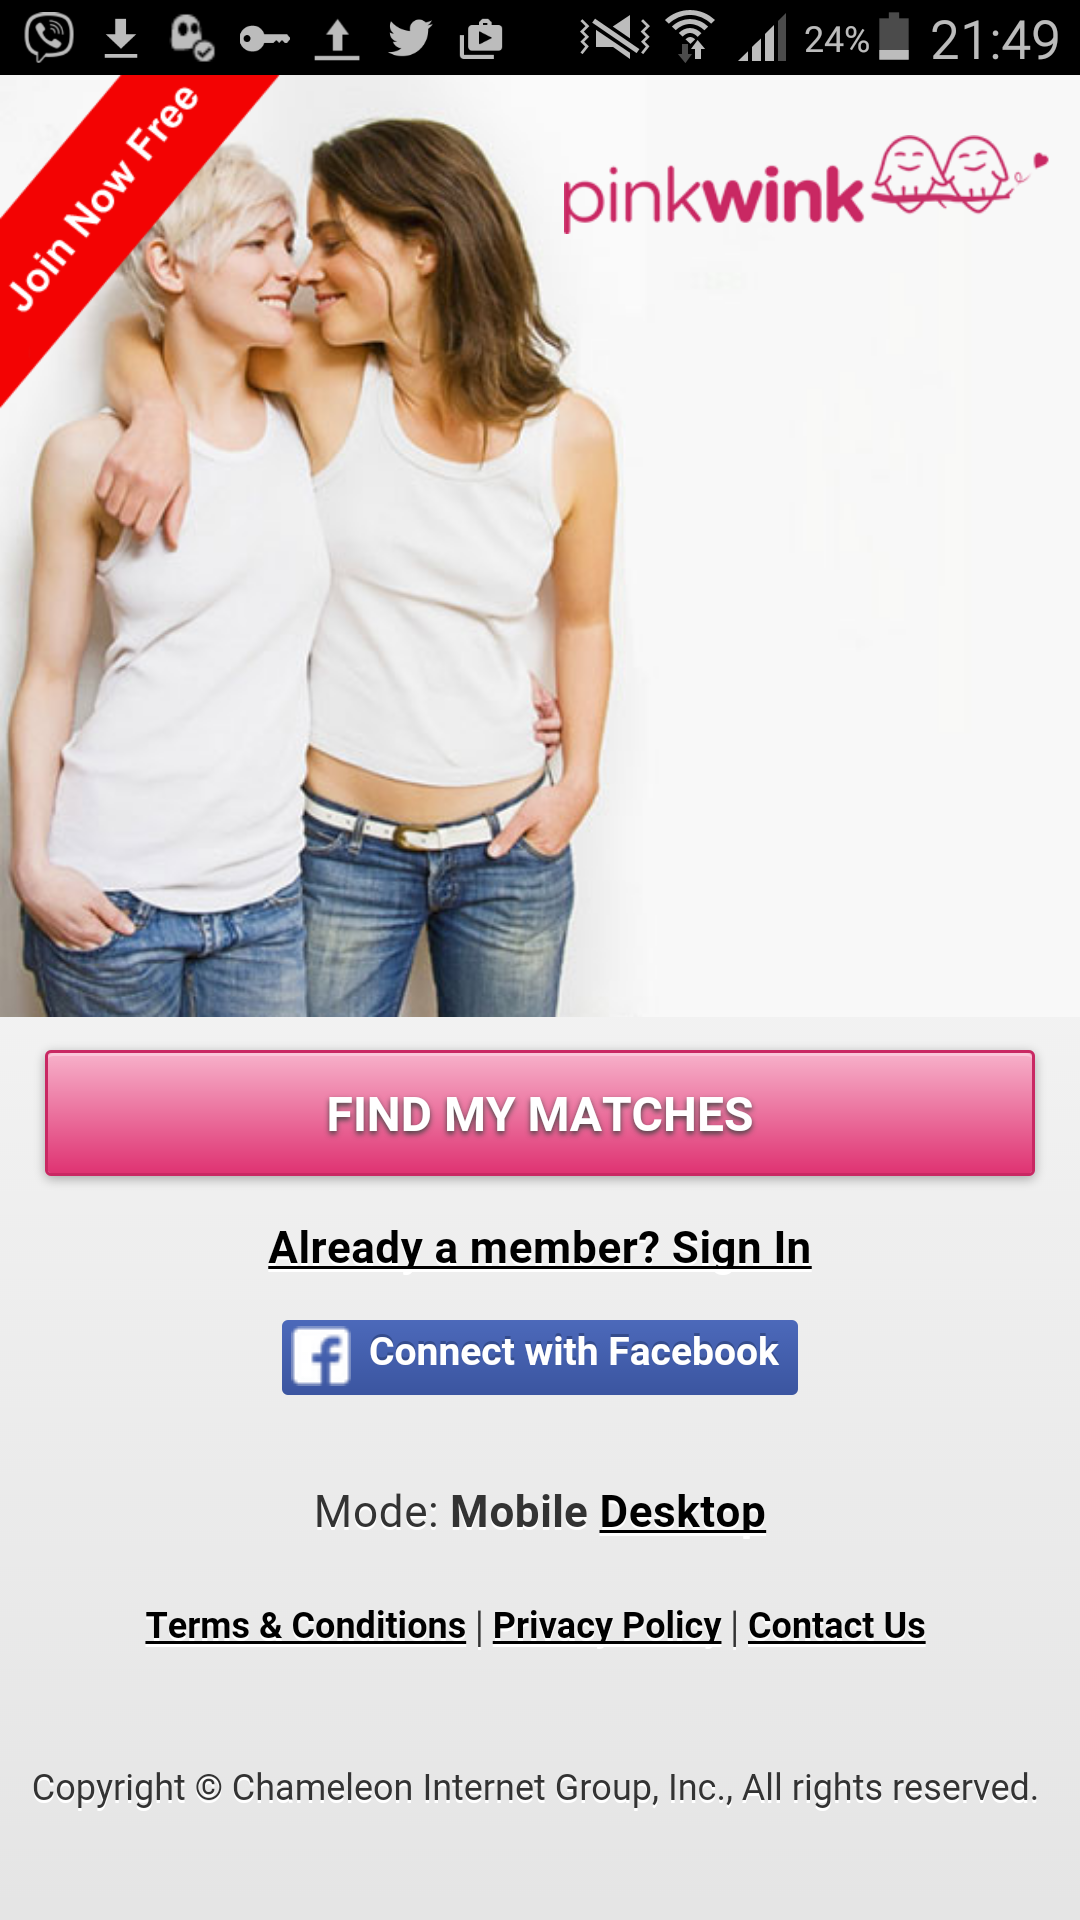 turmantas lesbian dating site Love is just within your grasp when you join the best lesbian dating site all you have to do is keep an open mind and be yourself.